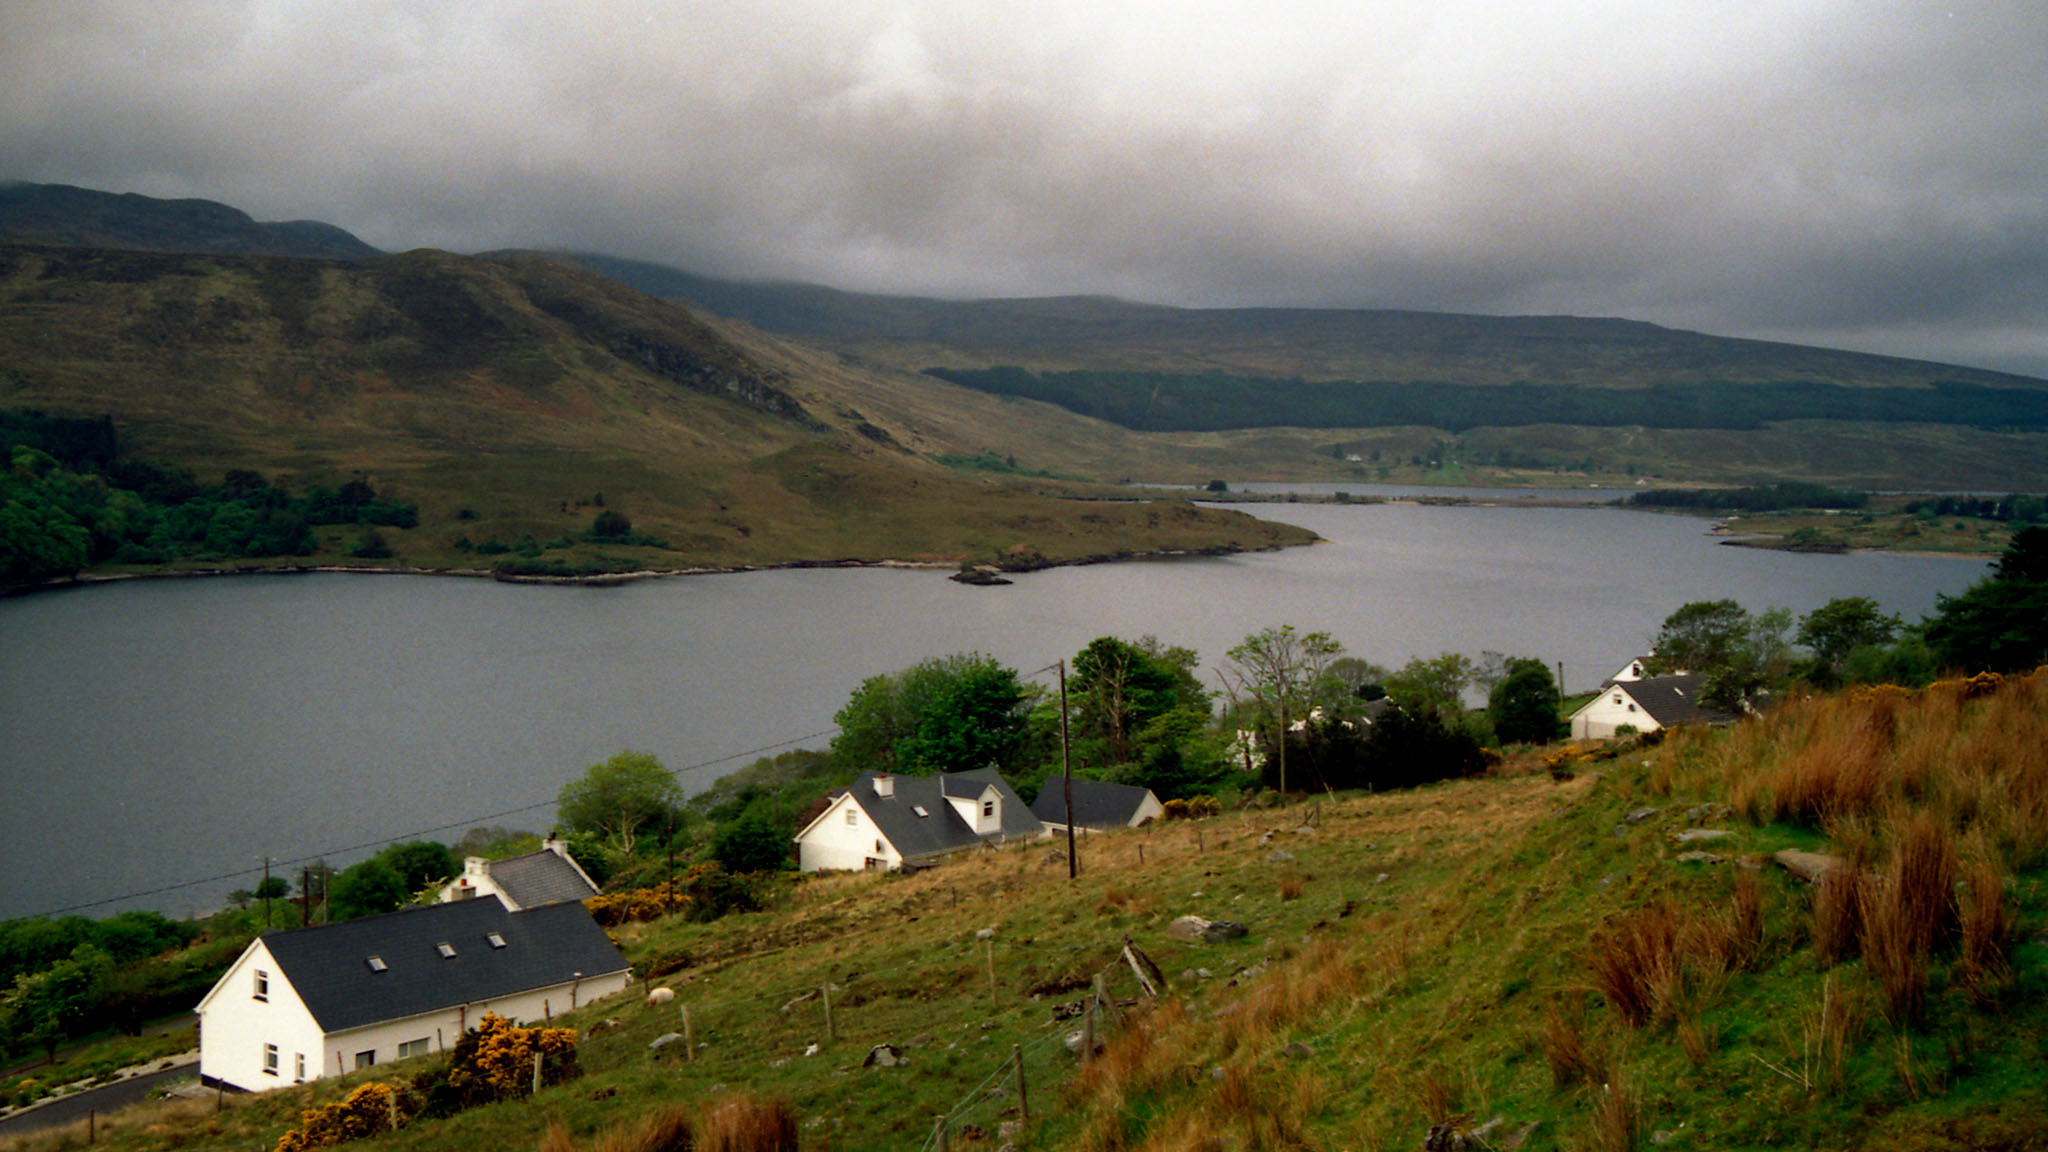 Views from the Poisoned Glen in Northern County Donegal, Ireland.